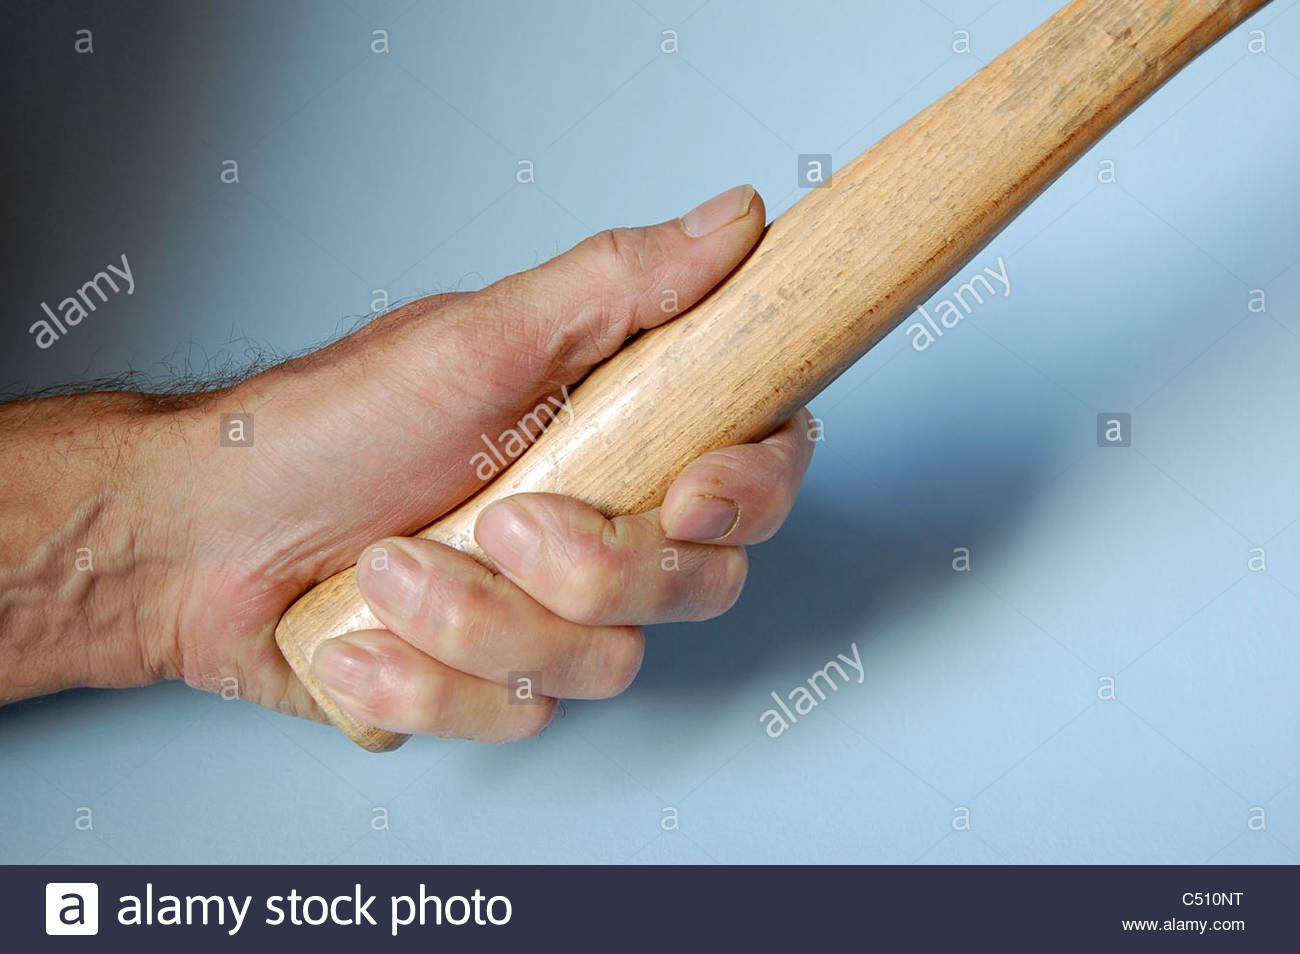 Wooden Hammer Stock Photos & Wooden Hammer Stock Images - Alamy